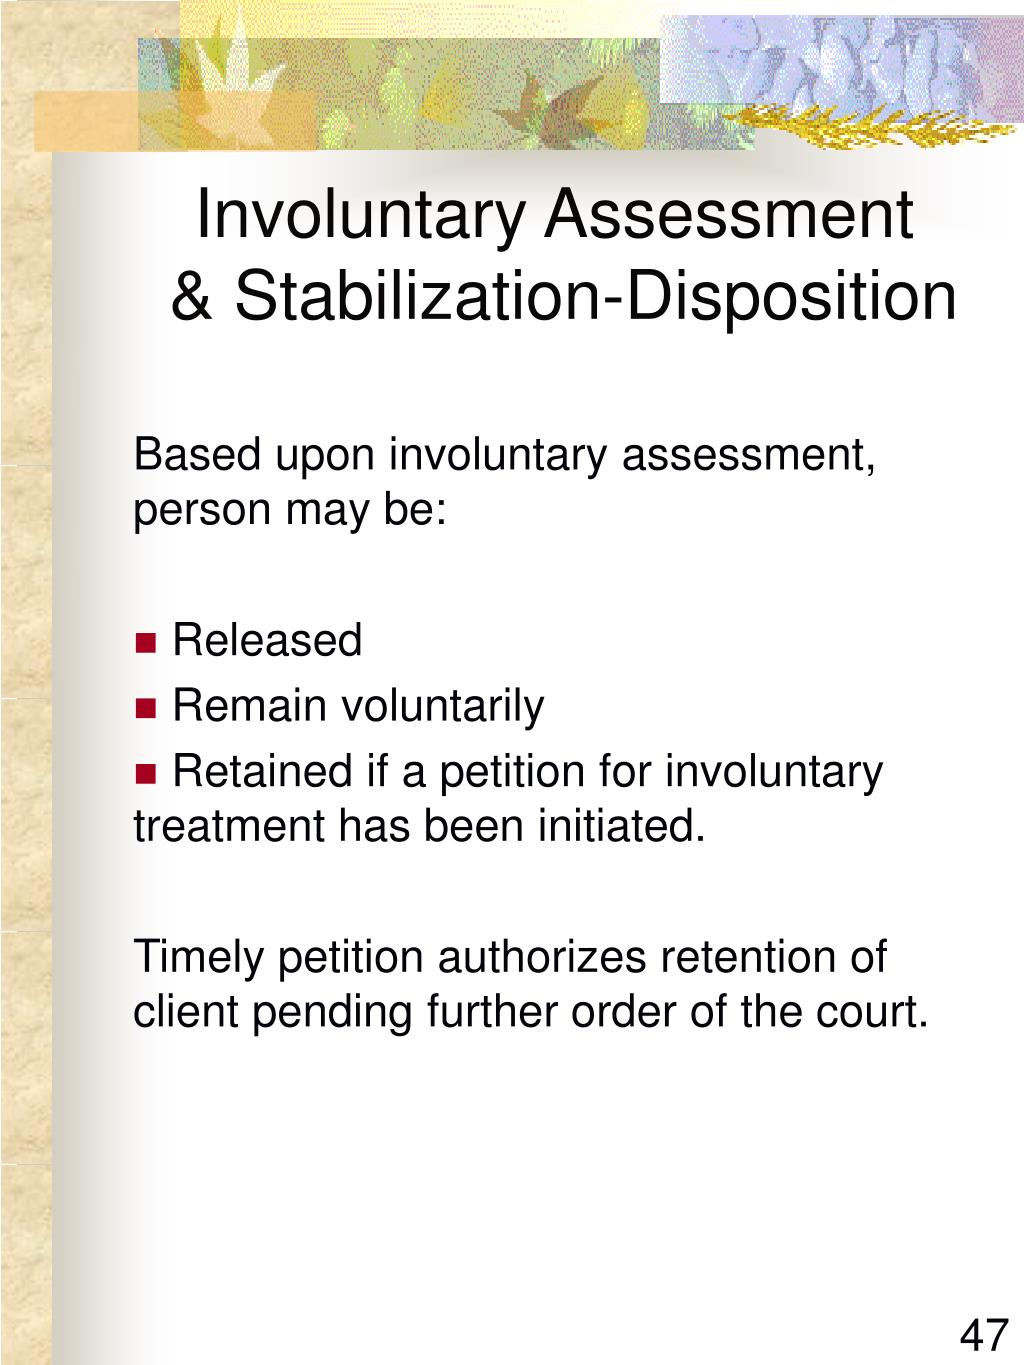 Involuntary Assessment